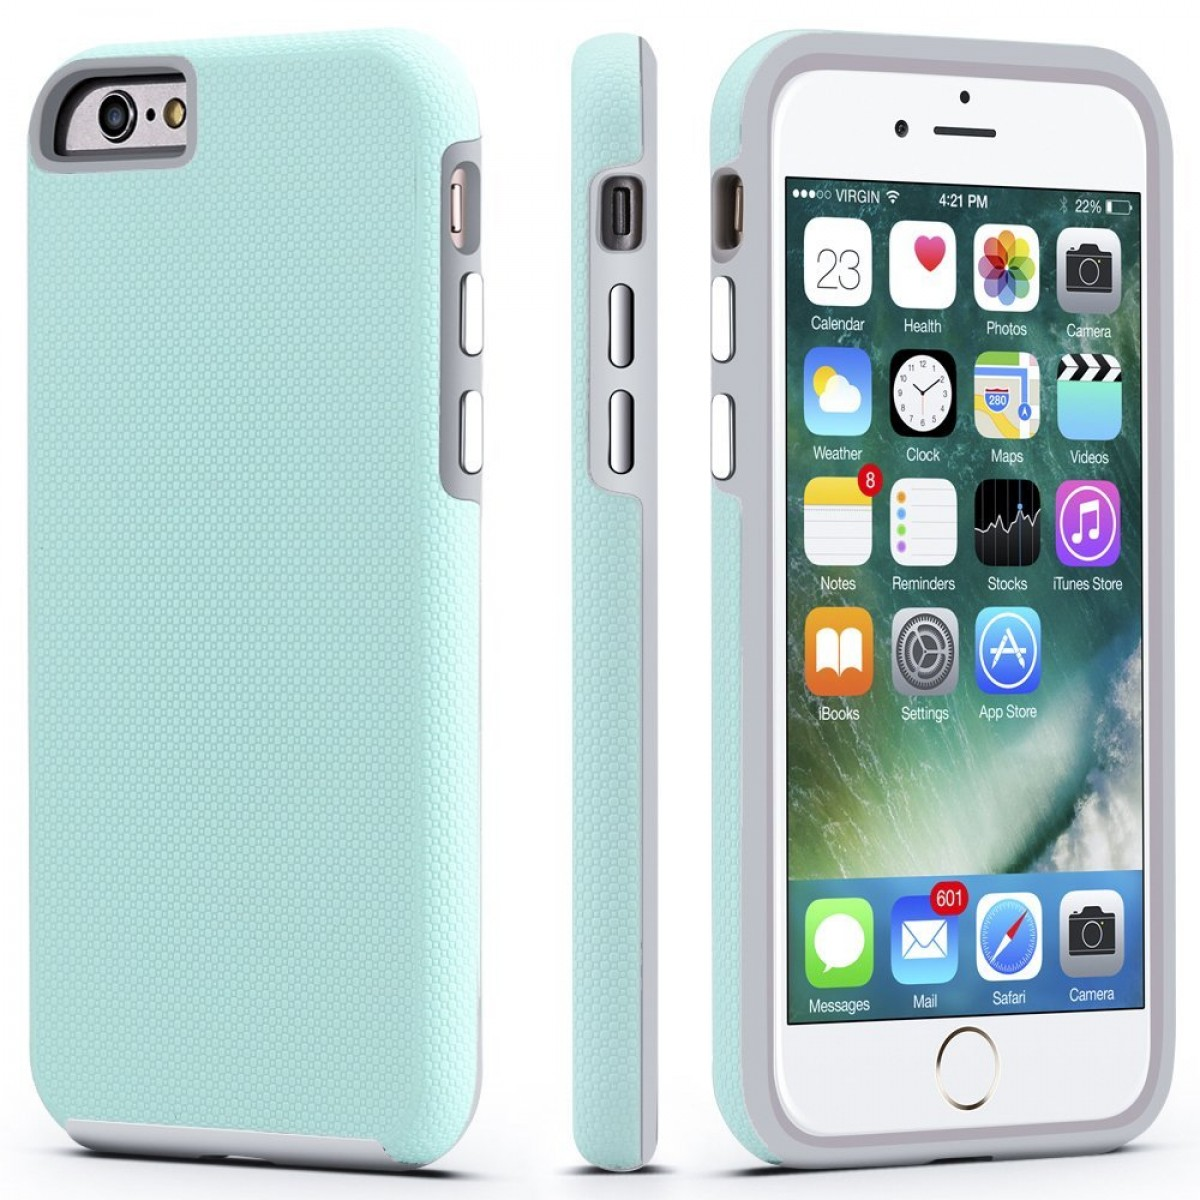 release date 8cd07 5129e iPhone 6 Plus Case, CellEver Dual Guard Protective Shock-Absorbing  Scratch-Resistant Rugged Drop Protection Cover for Apple iPhone 6 Plus / 6S  Plus ...